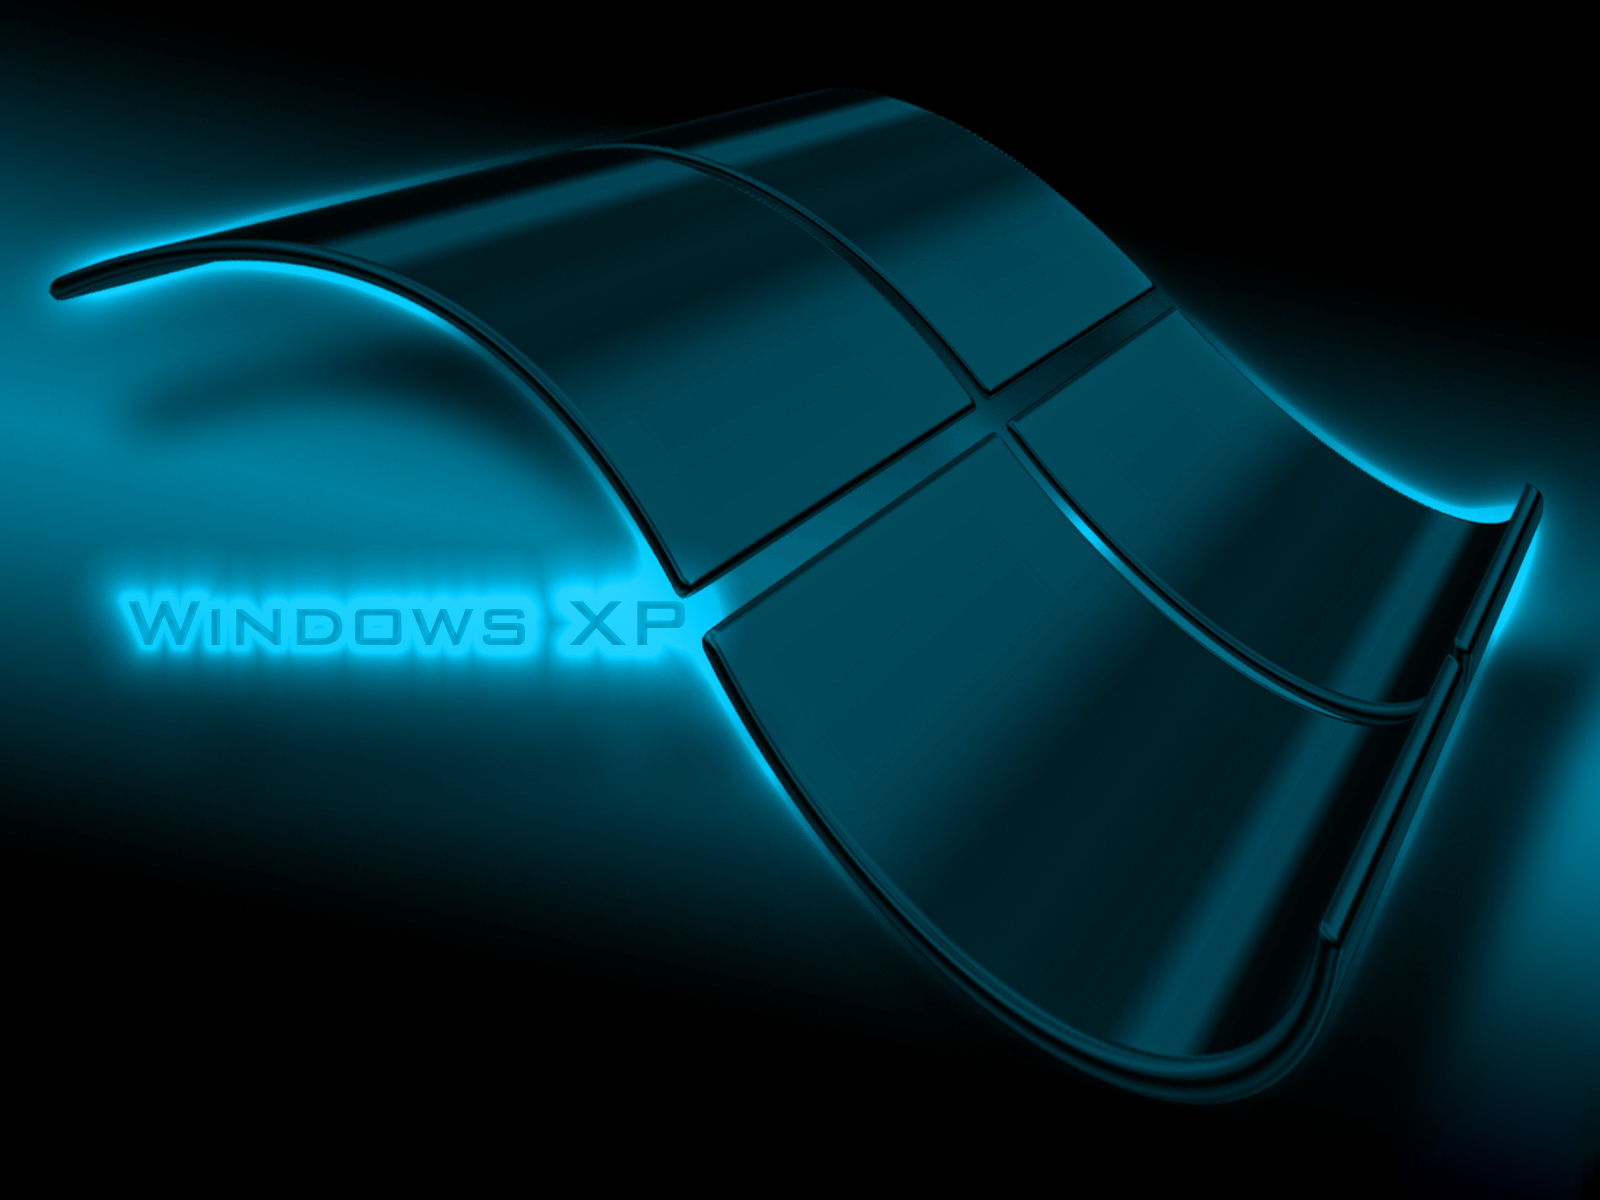 Wallpapers for Desktop Windows XP Blue Illusion Wallpapers download 1600x1200